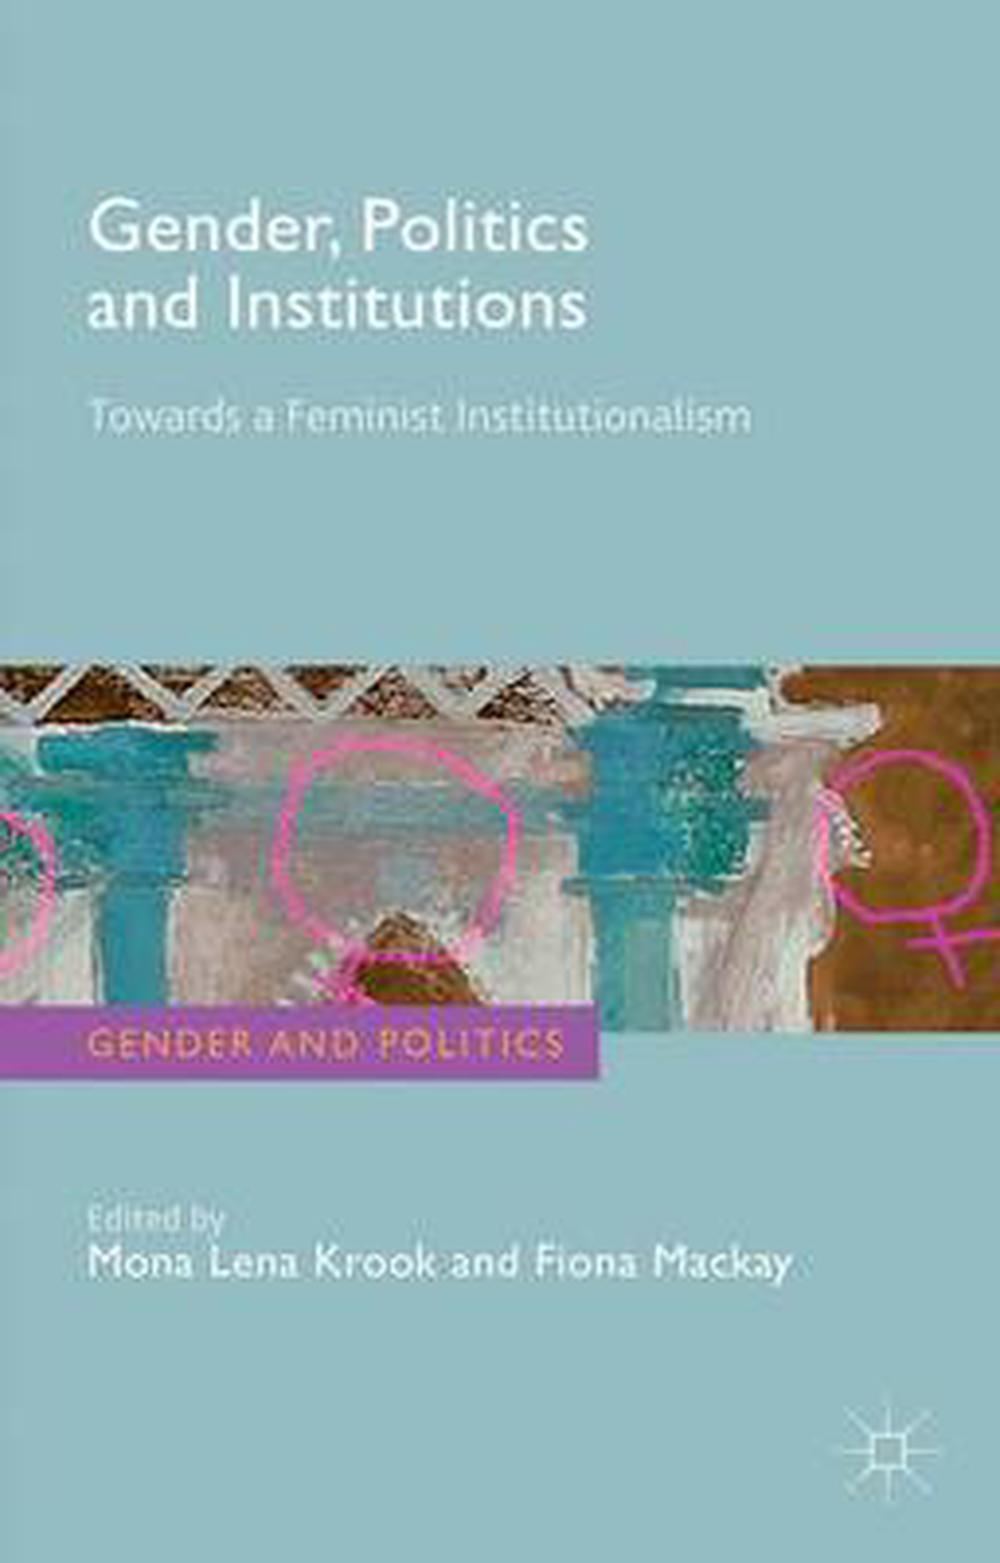 the gendered and gendering institutions Towards gendering institutionalism is notable for its theoretical richness and intellectual rigor it affords fresh insights into obstacles facing gender mainstreaming in the eu, as its nine case studies grapple with the ways gender is entangled with institutions.